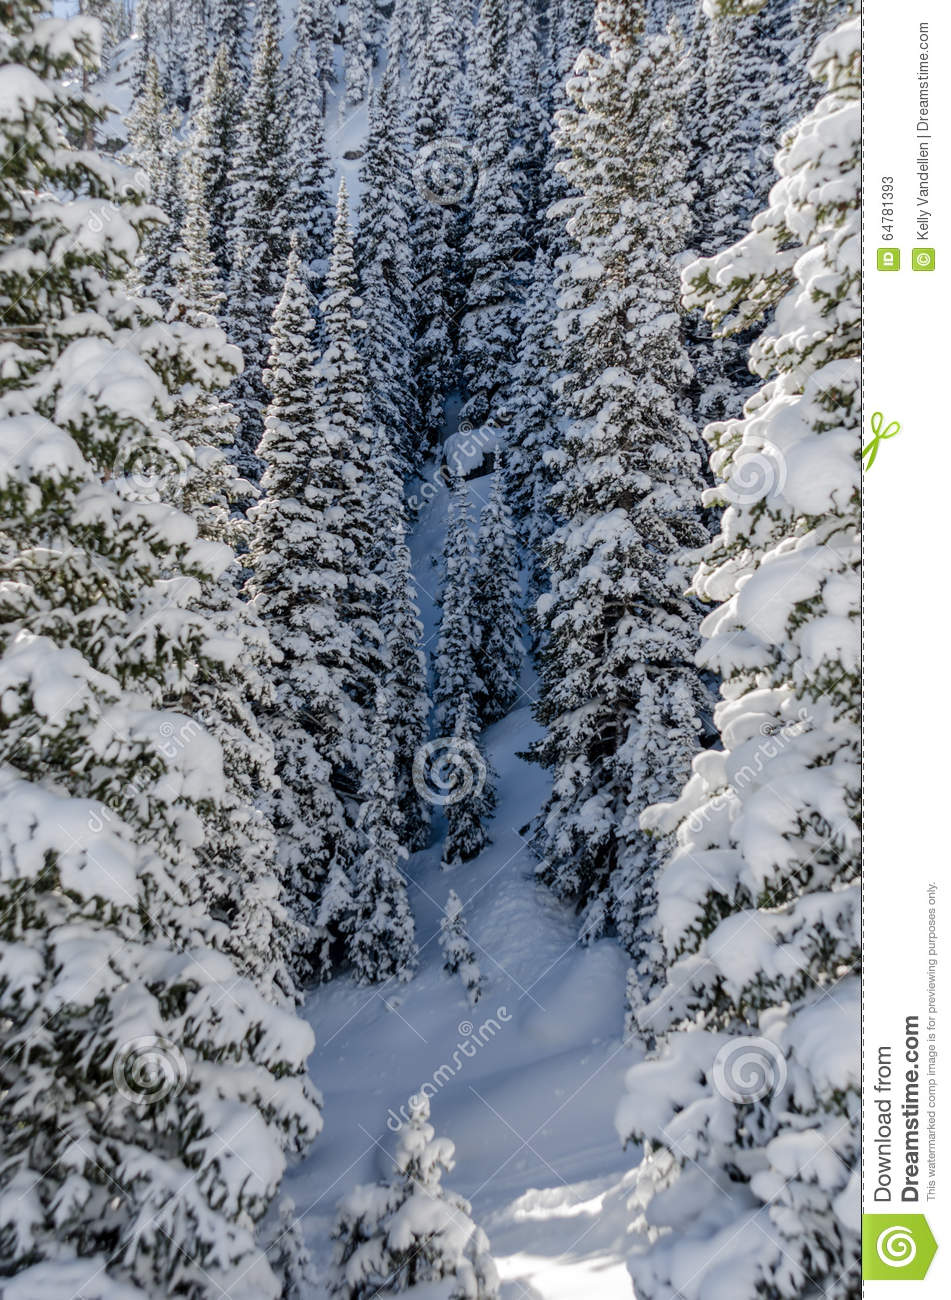 snowy forest white tree branches winter themed snowy winter stock photo image 64781393 255